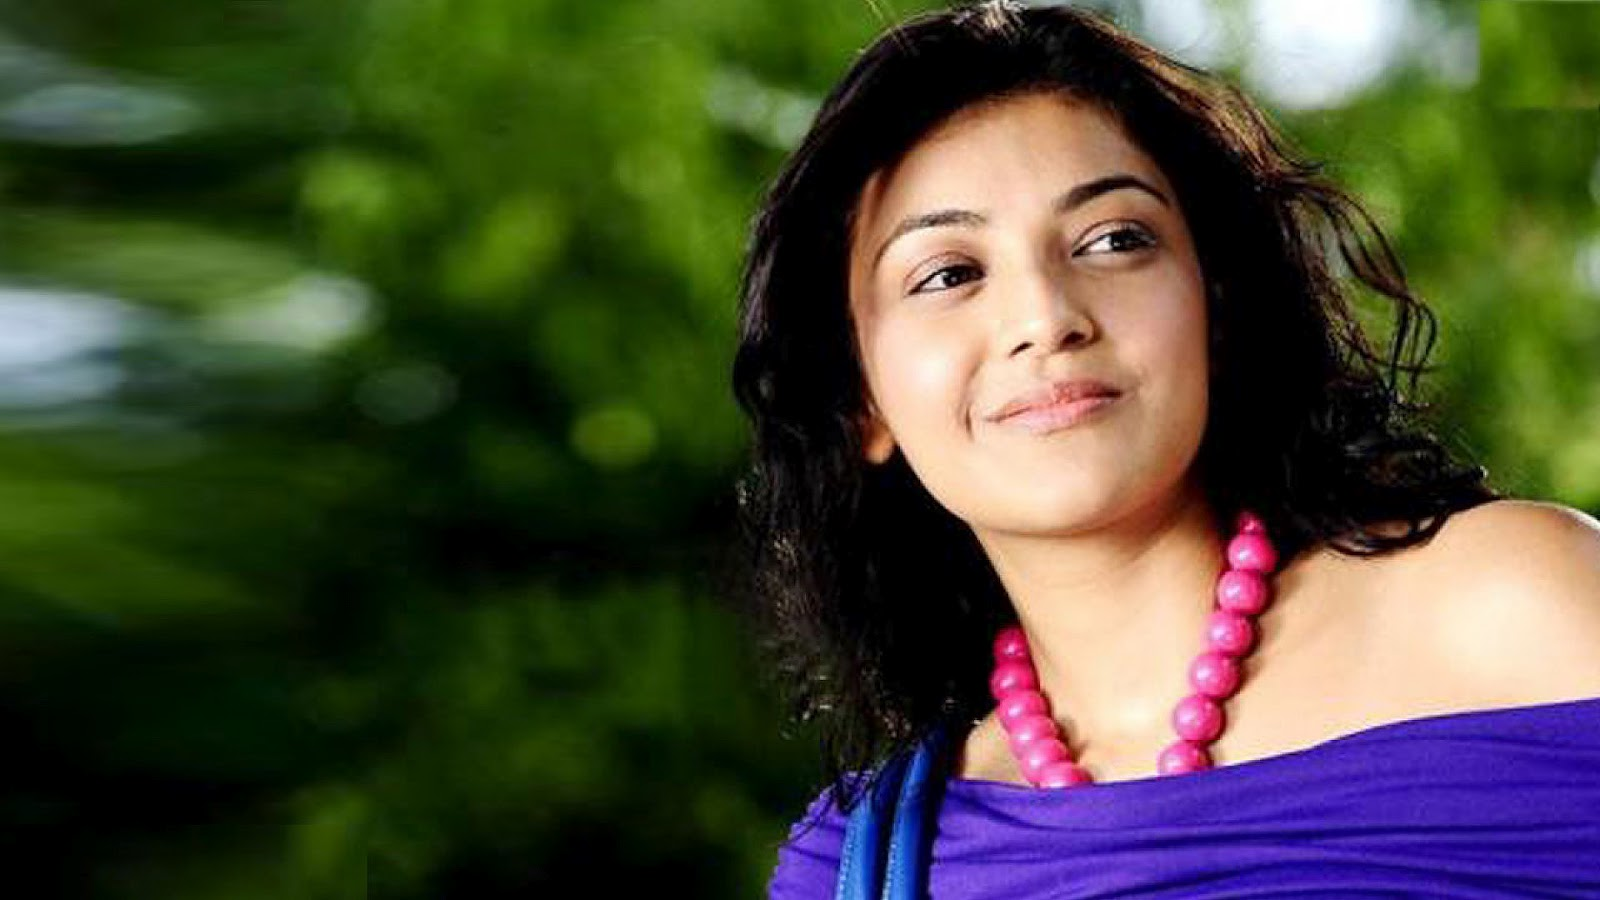 Wallpaper download kajal agarwal - Wallpaper Download Kajal Agarwal 57